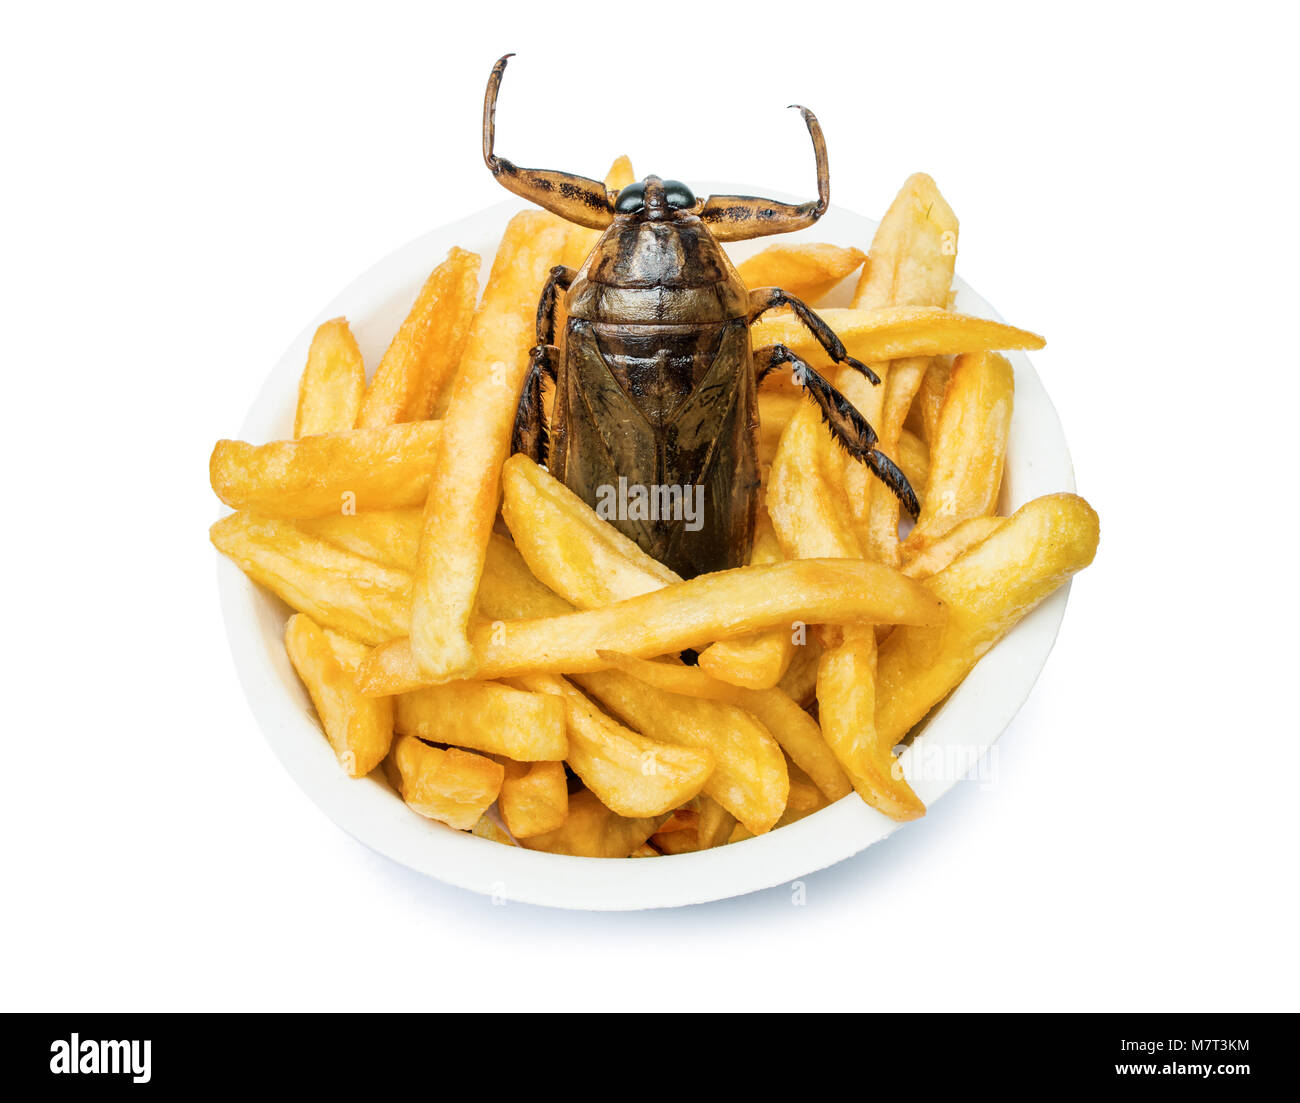 Cockroach Food Truck Pictures